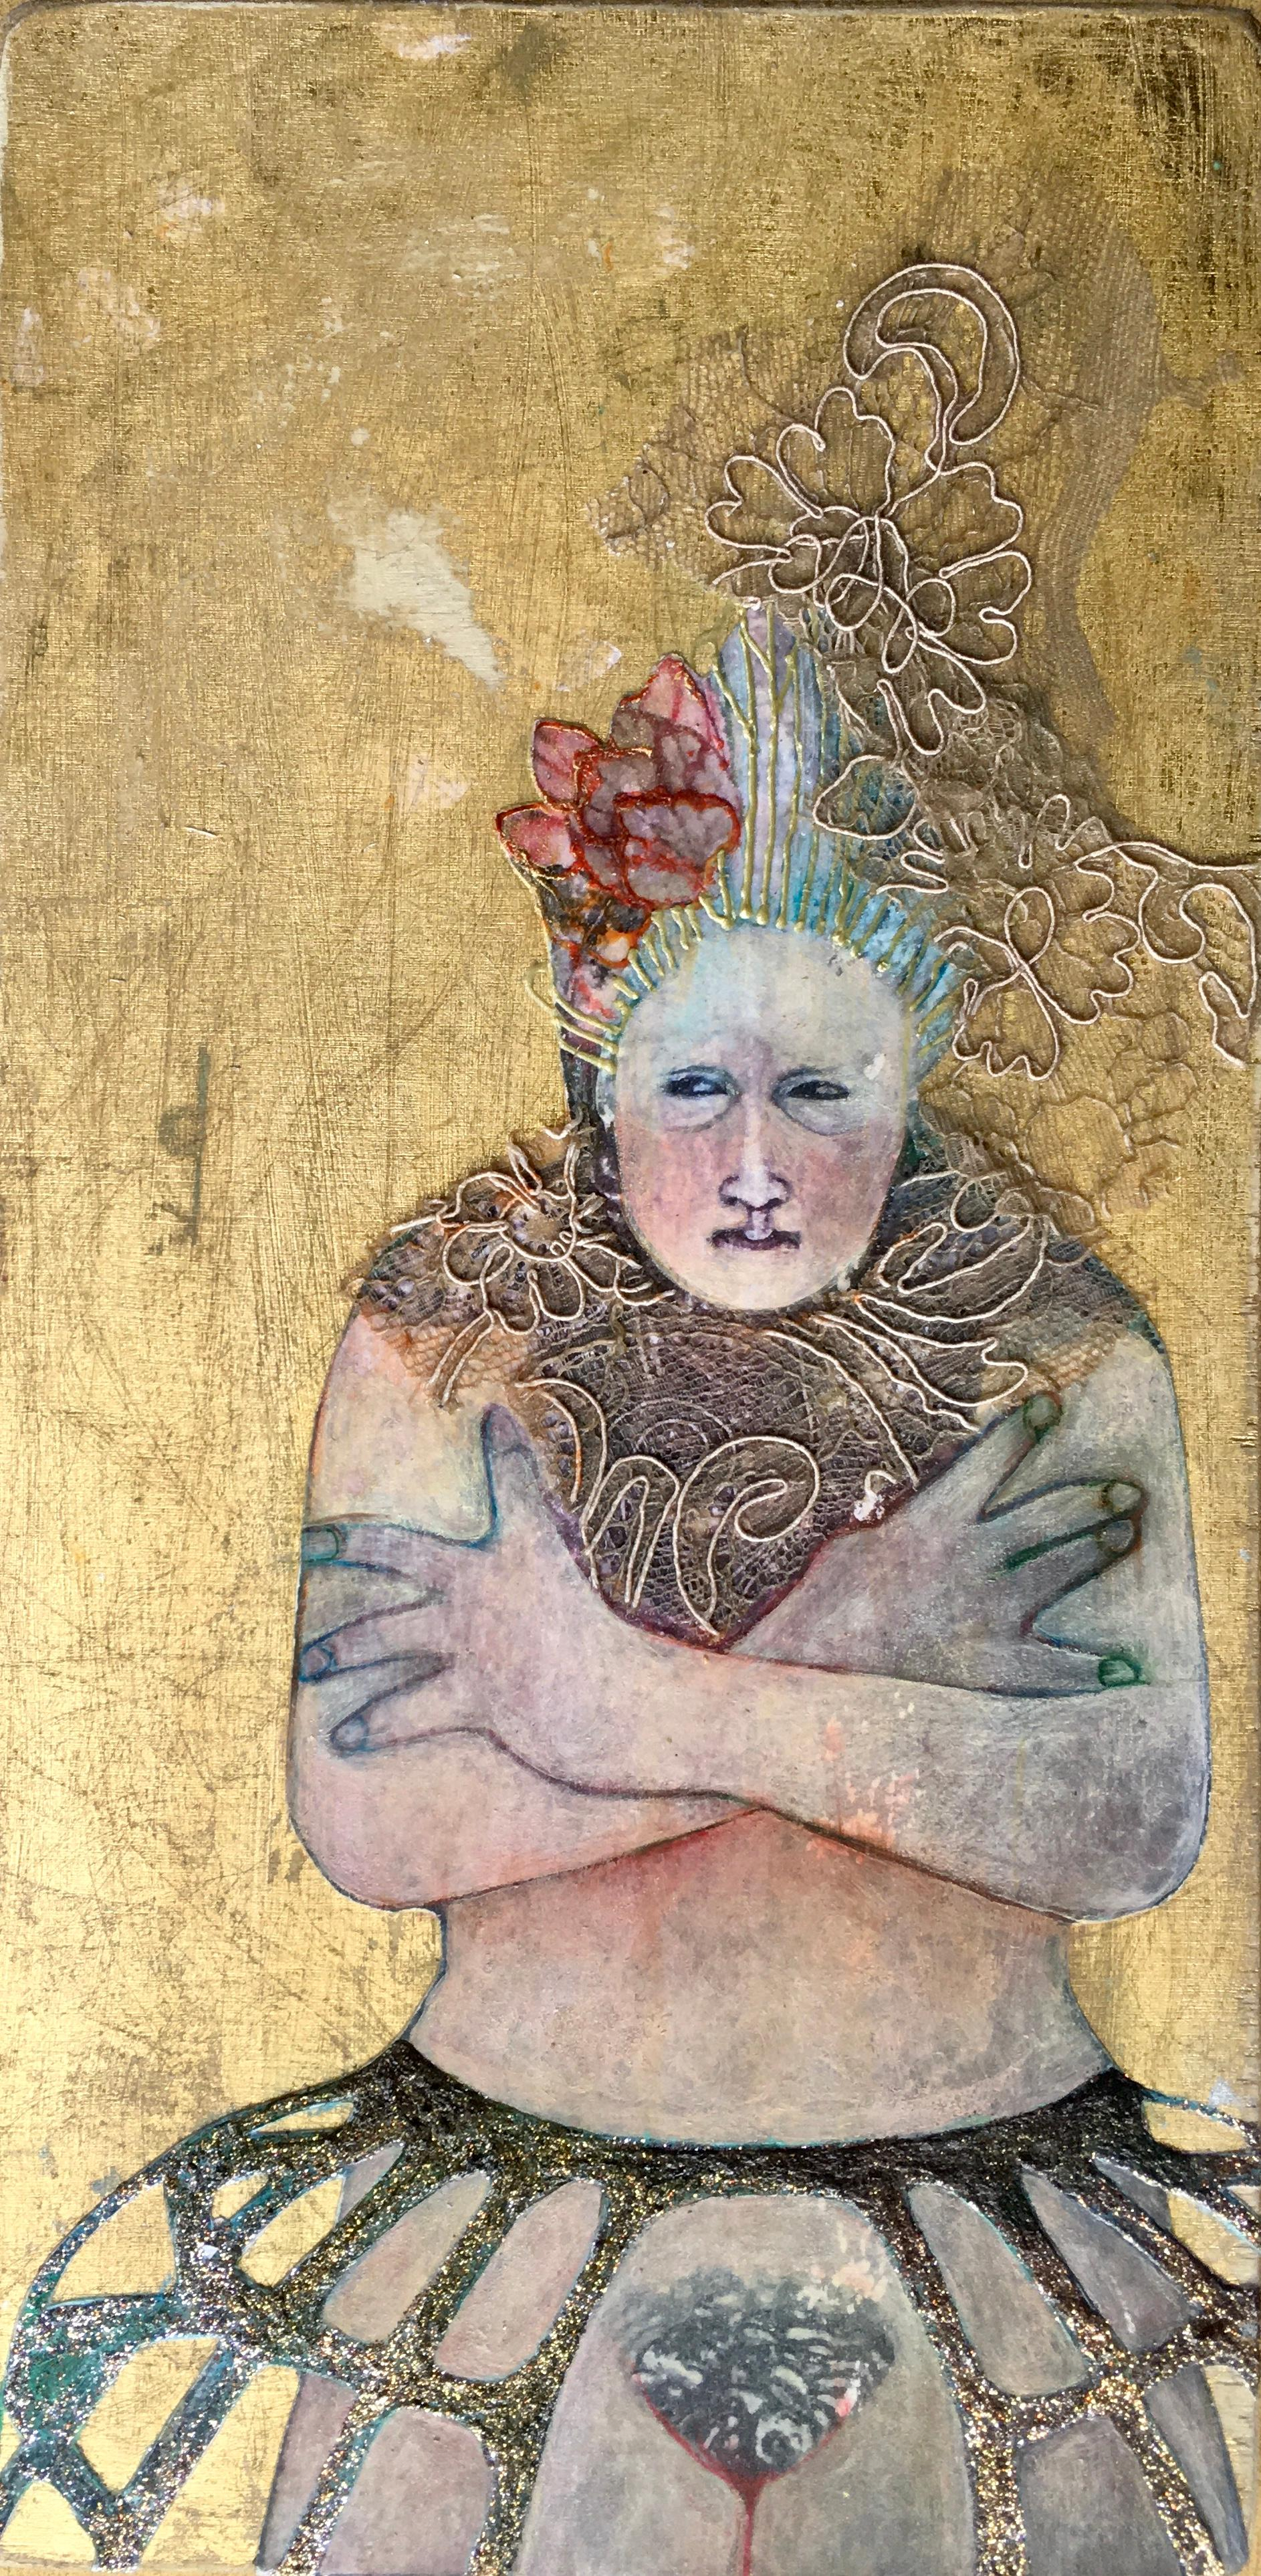 White Queen, mixed media portrait of nude woman with feather headpiece